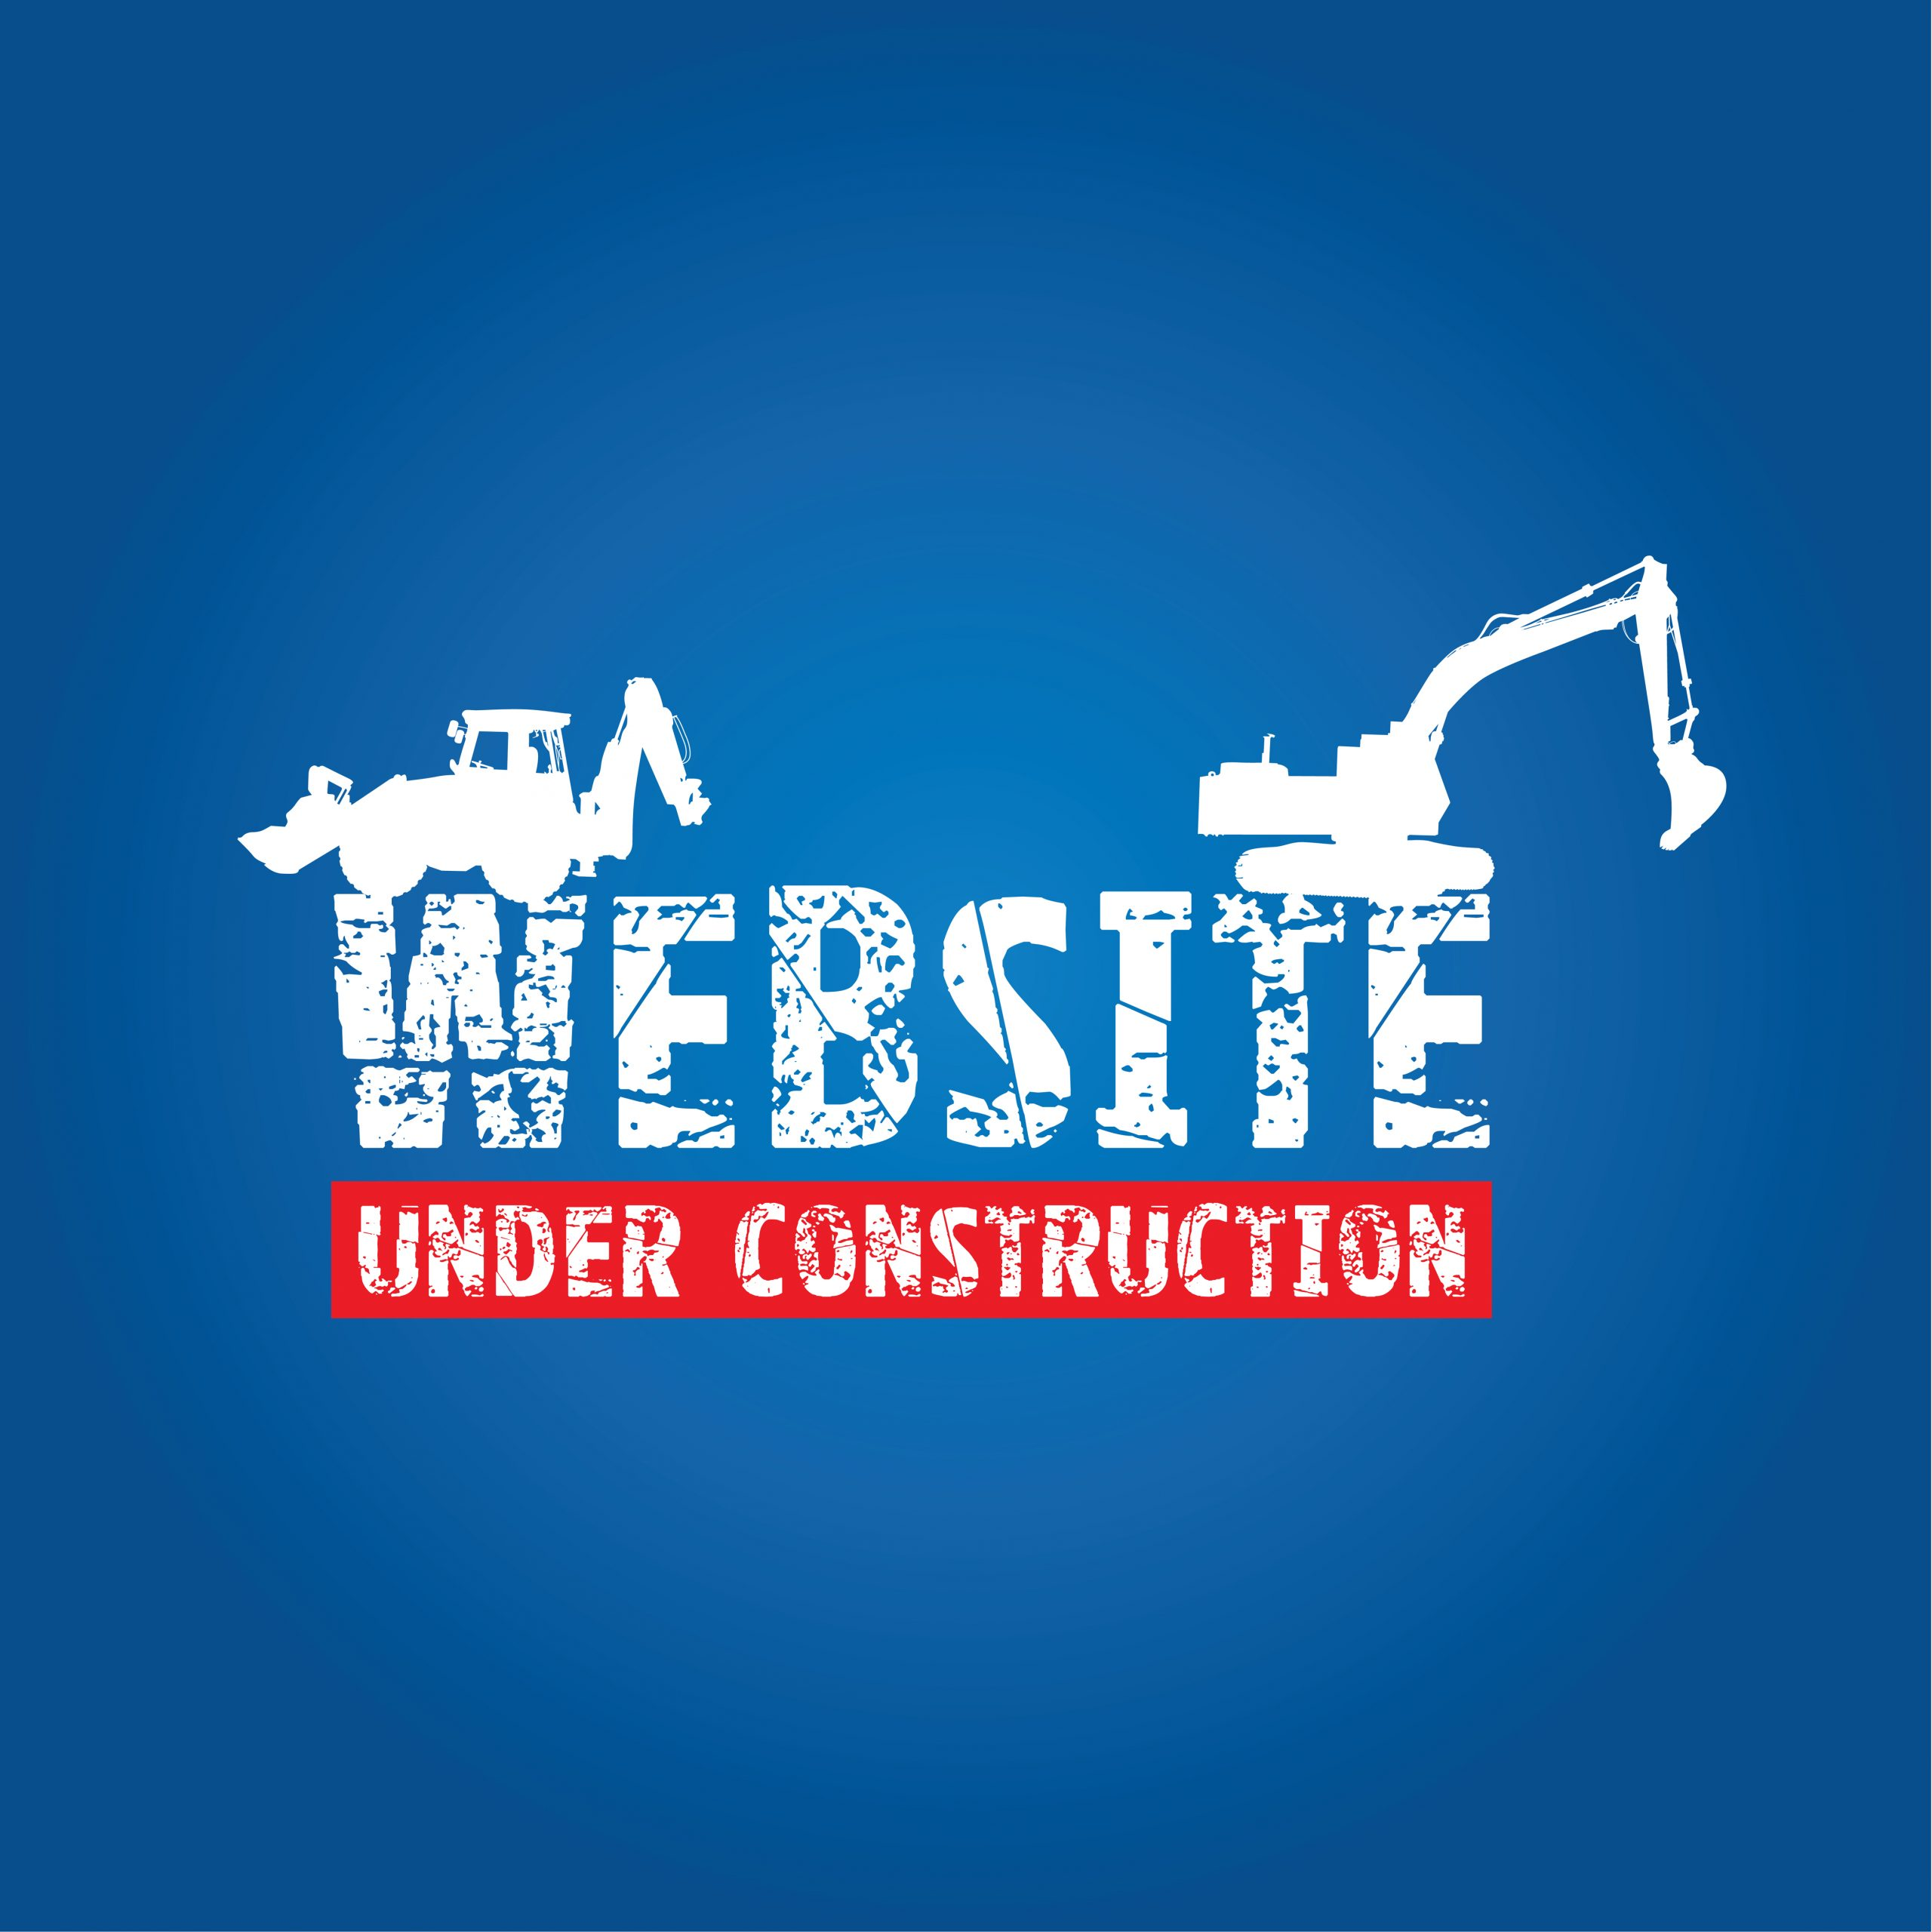 Construction Website Tips for 2021